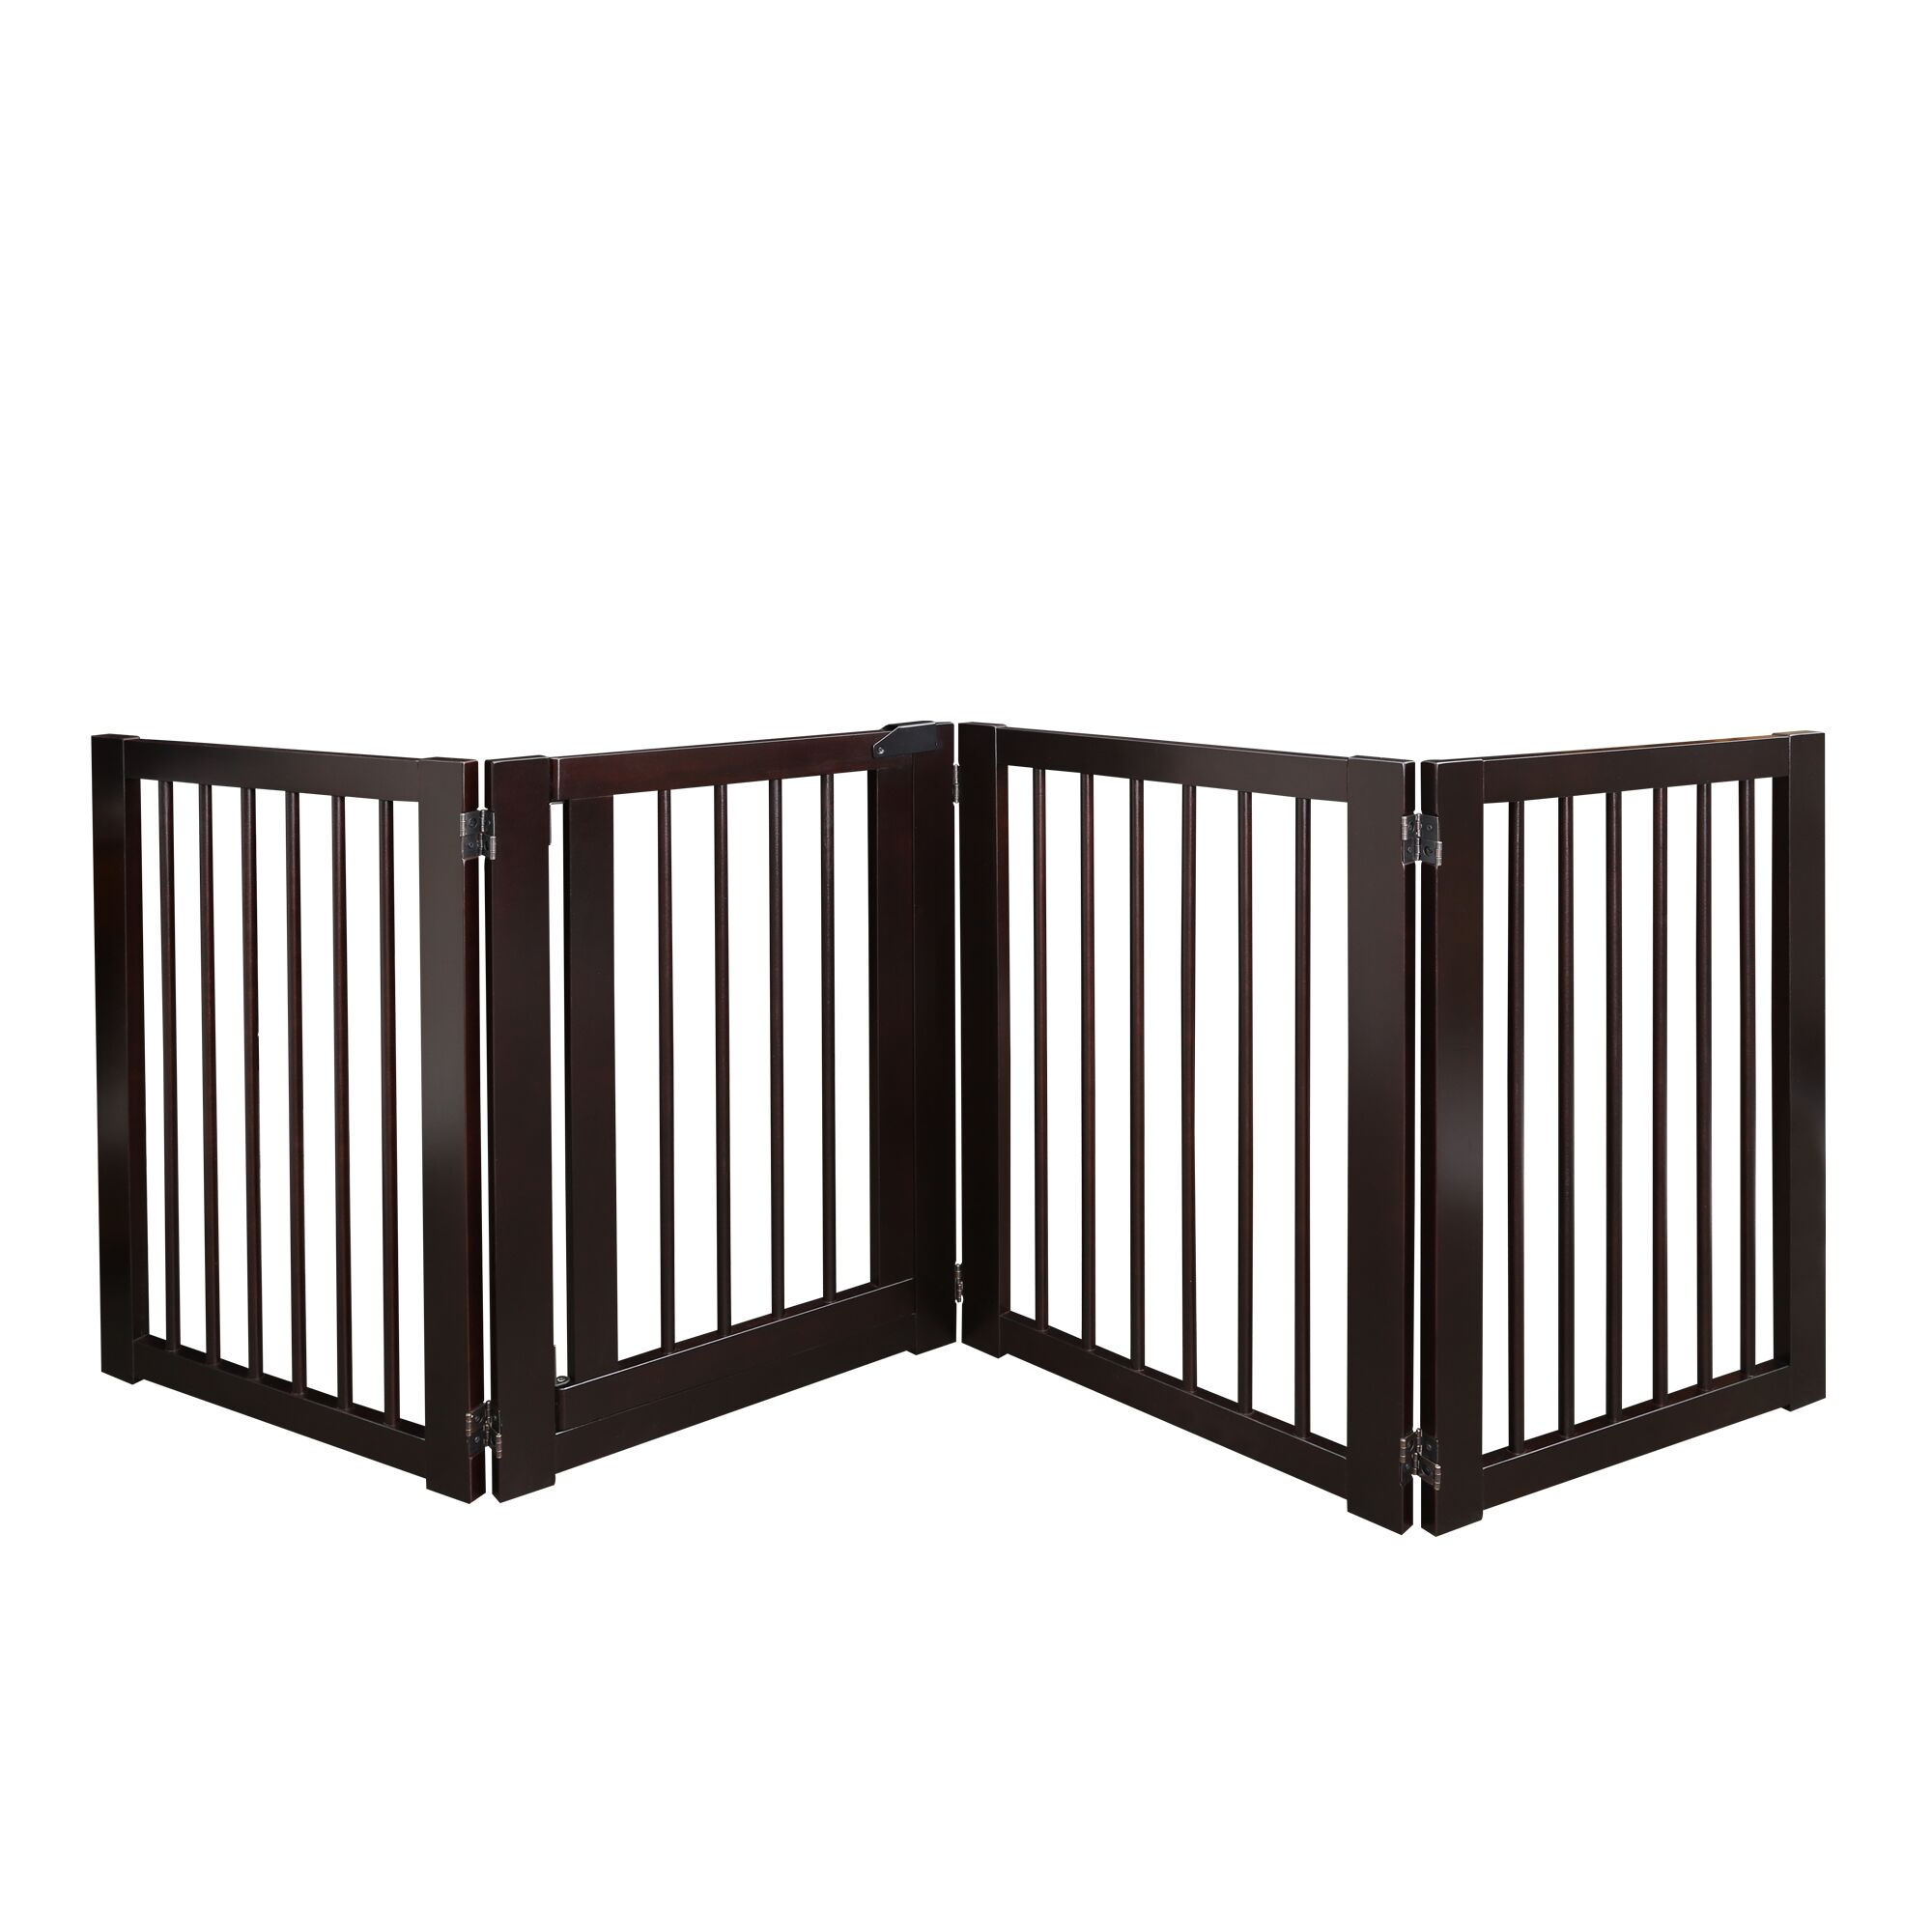 American Trails 600-54 Free Standing Pet Gate with Door - Espresso